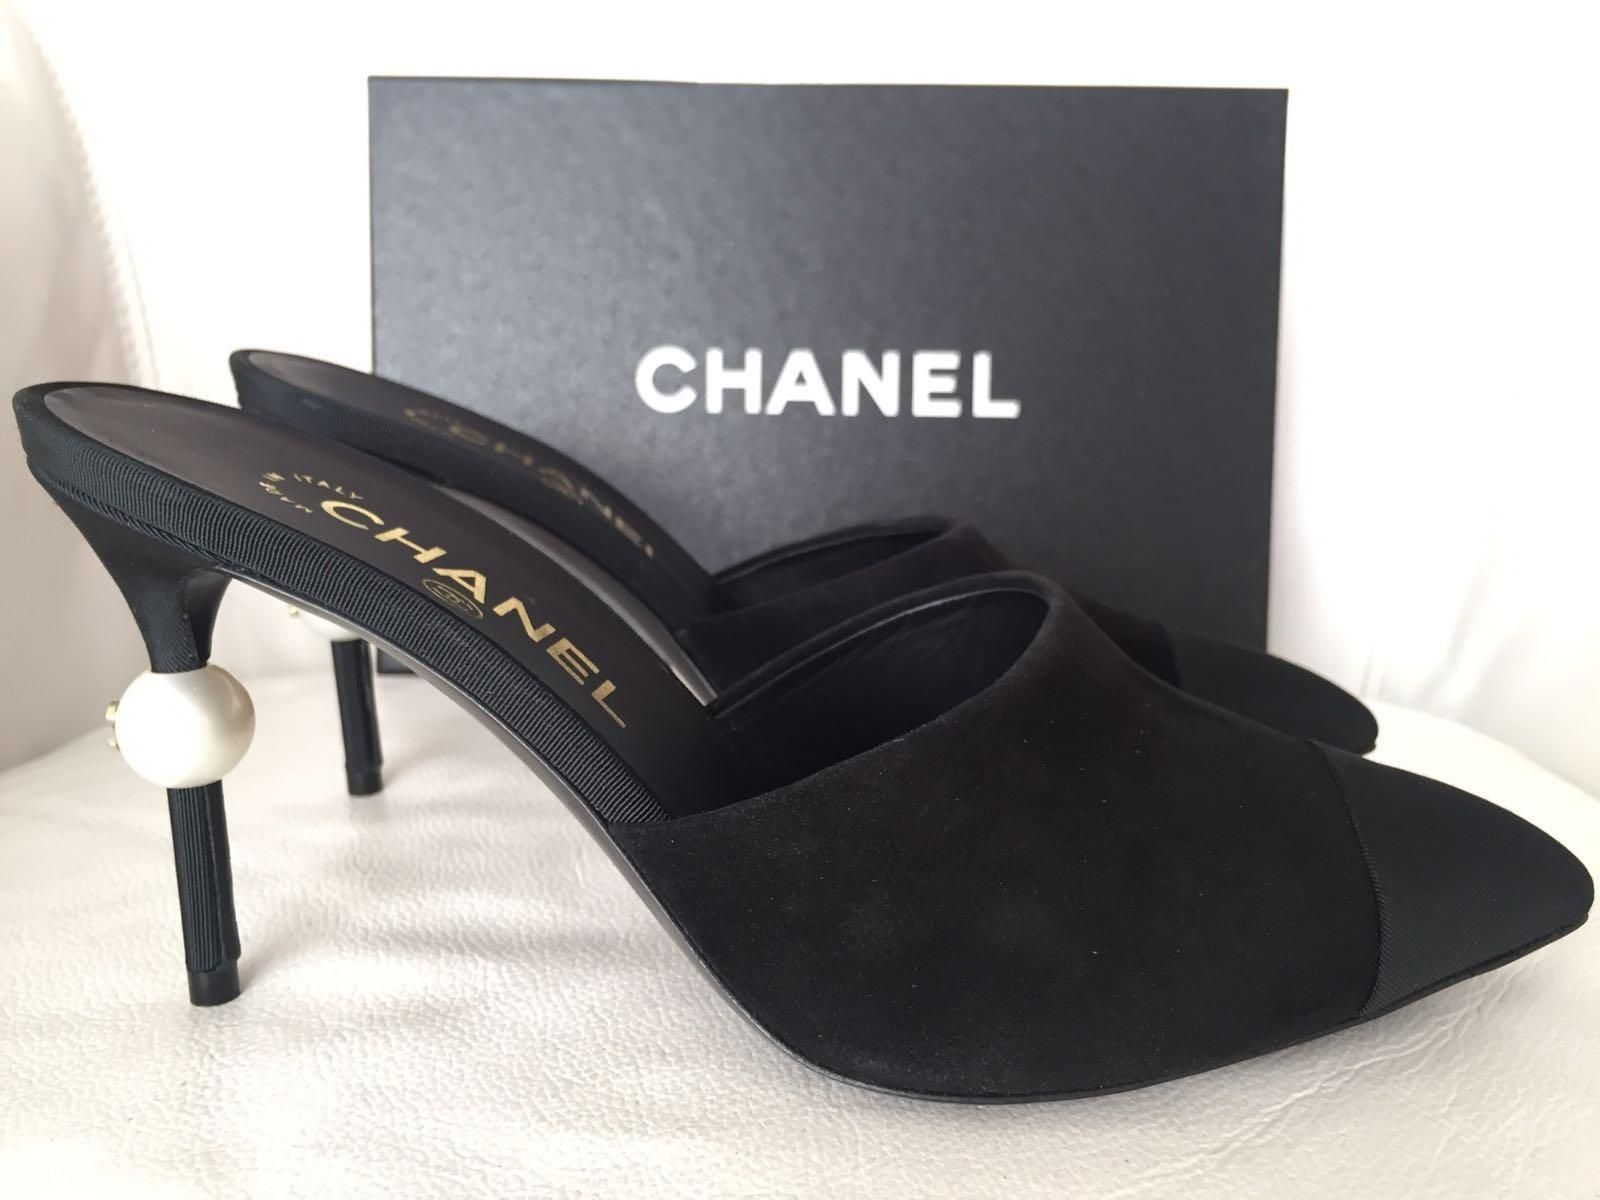 c83aafbec6f0ff Chanel Runway Suede Heels Pearl Pumps 38 Nib Black Mules. Get the must-have  mules of this season! These Chanel Runway Suede Heels…